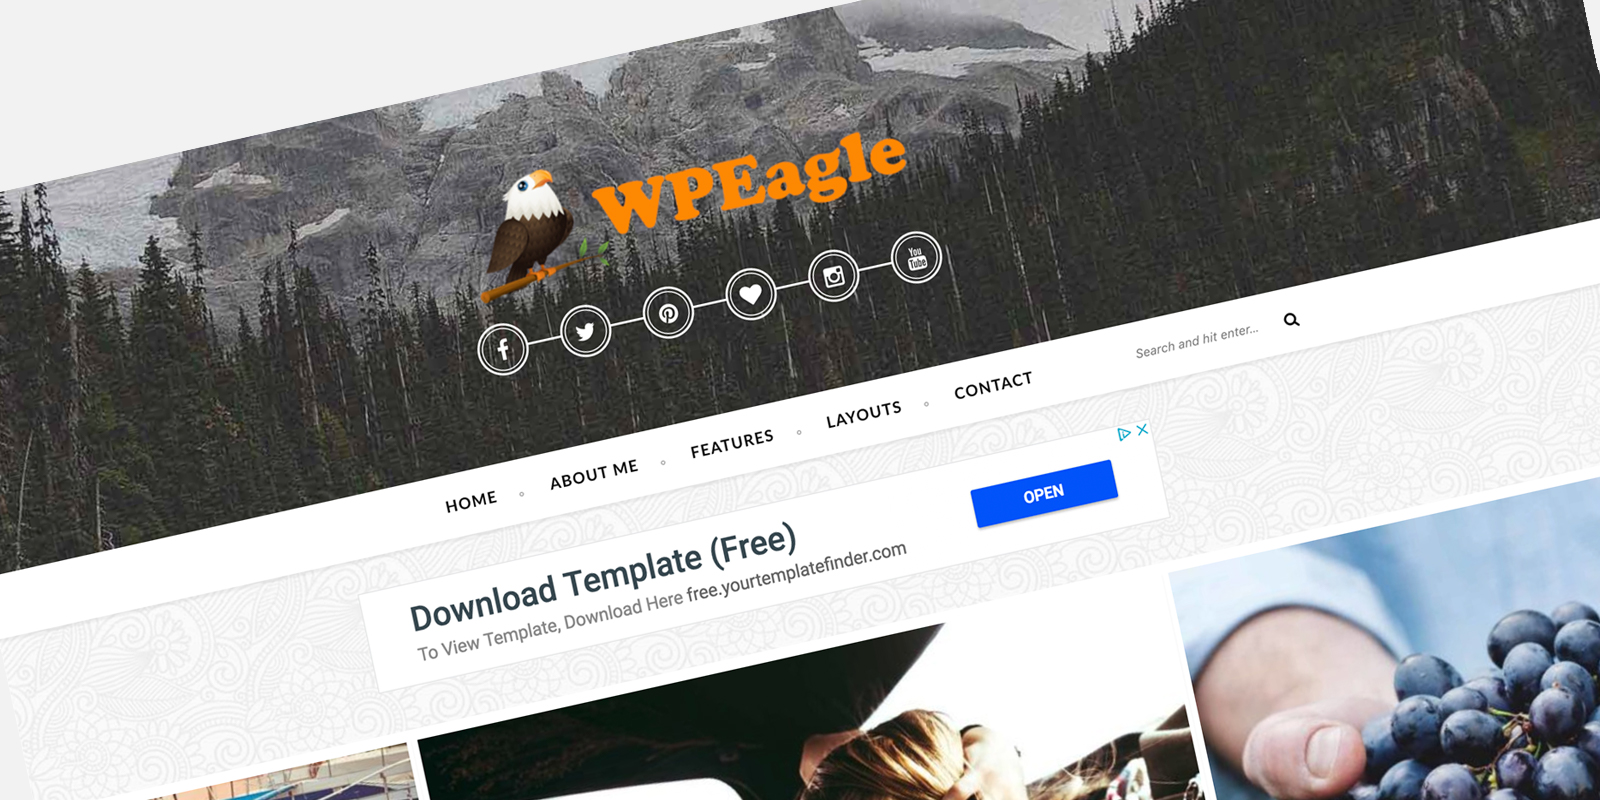 https://www.wpeagle.com/category/build/blog-build/